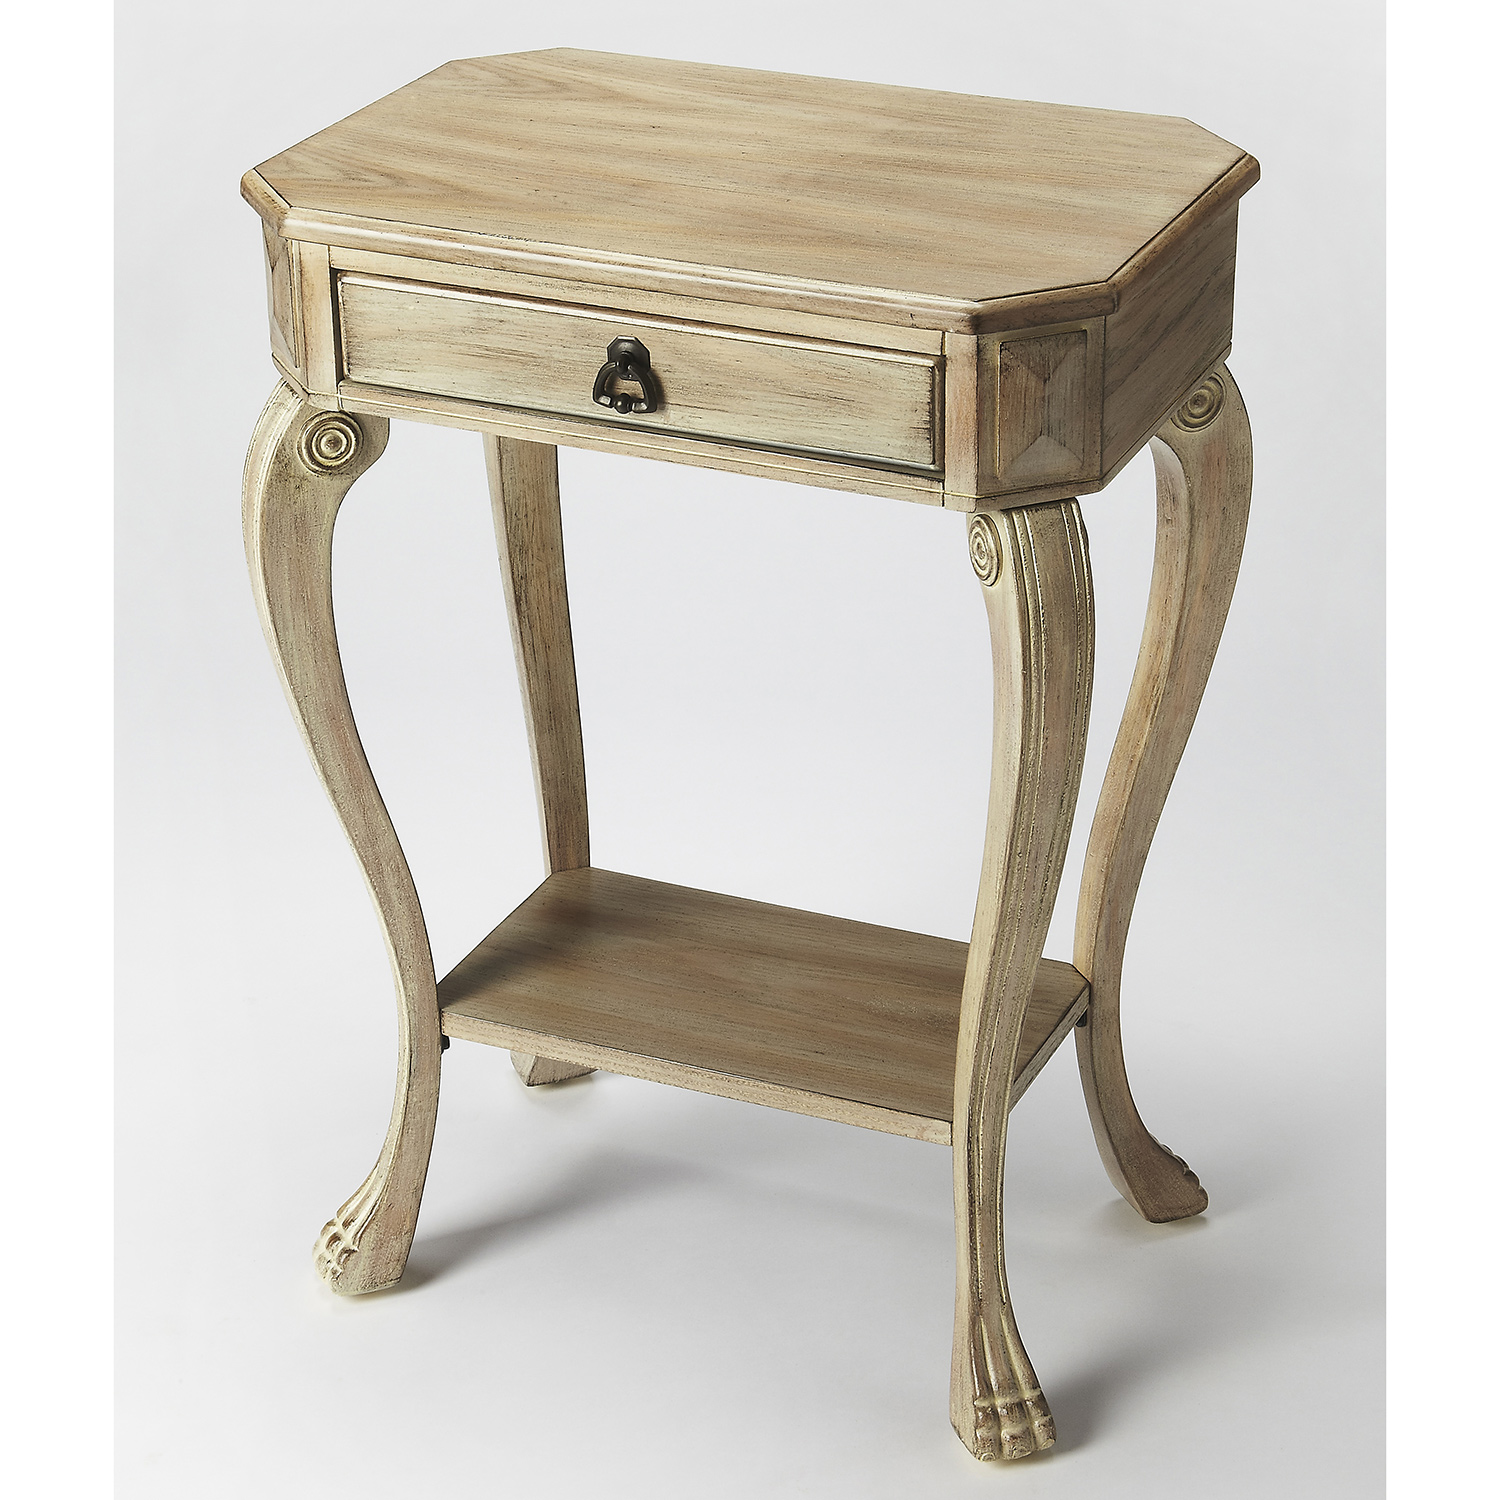 Butler specialty 5021247 channing driftwood console table channing driftwood console table geotapseo Images